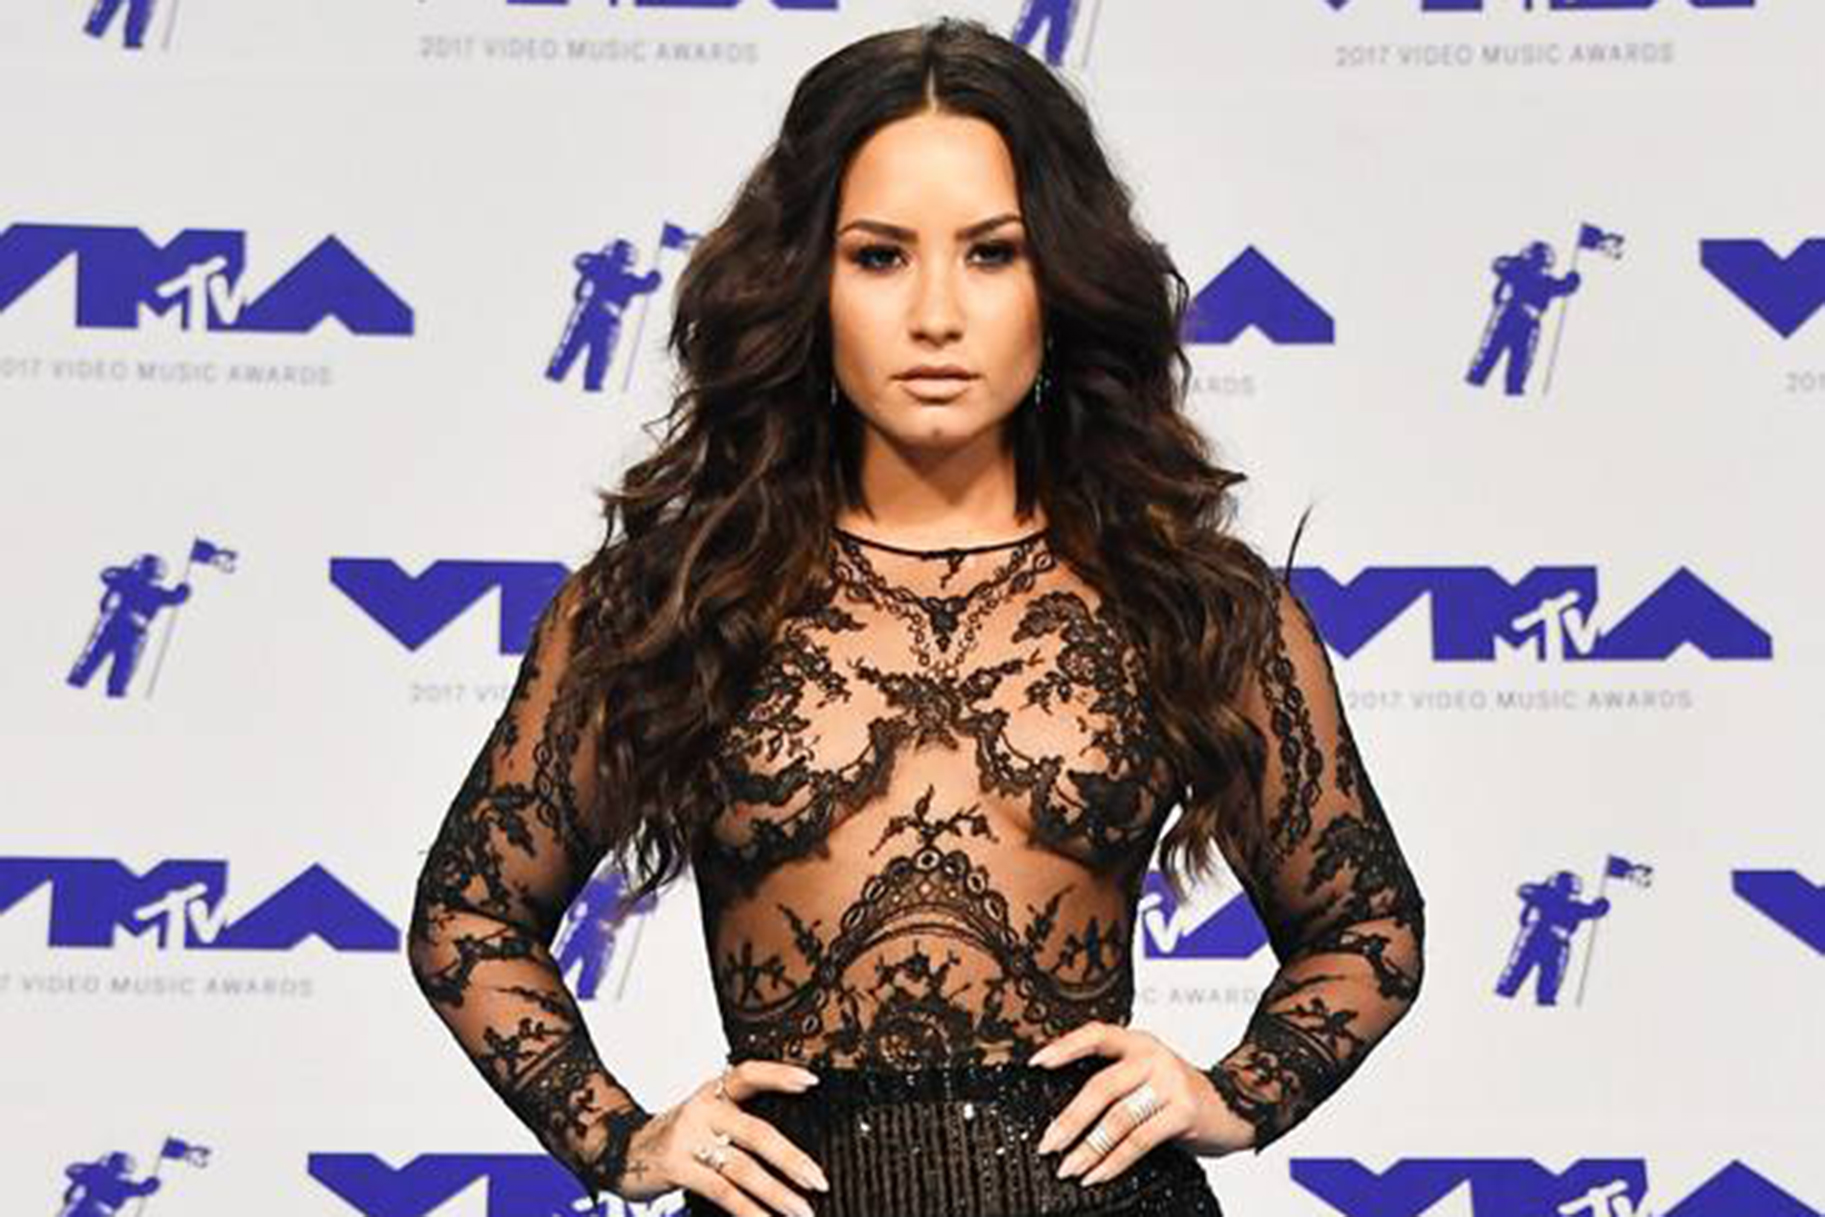 Demi Lovato breaks silence following suspected drug overdose: 'I will keep fighting'